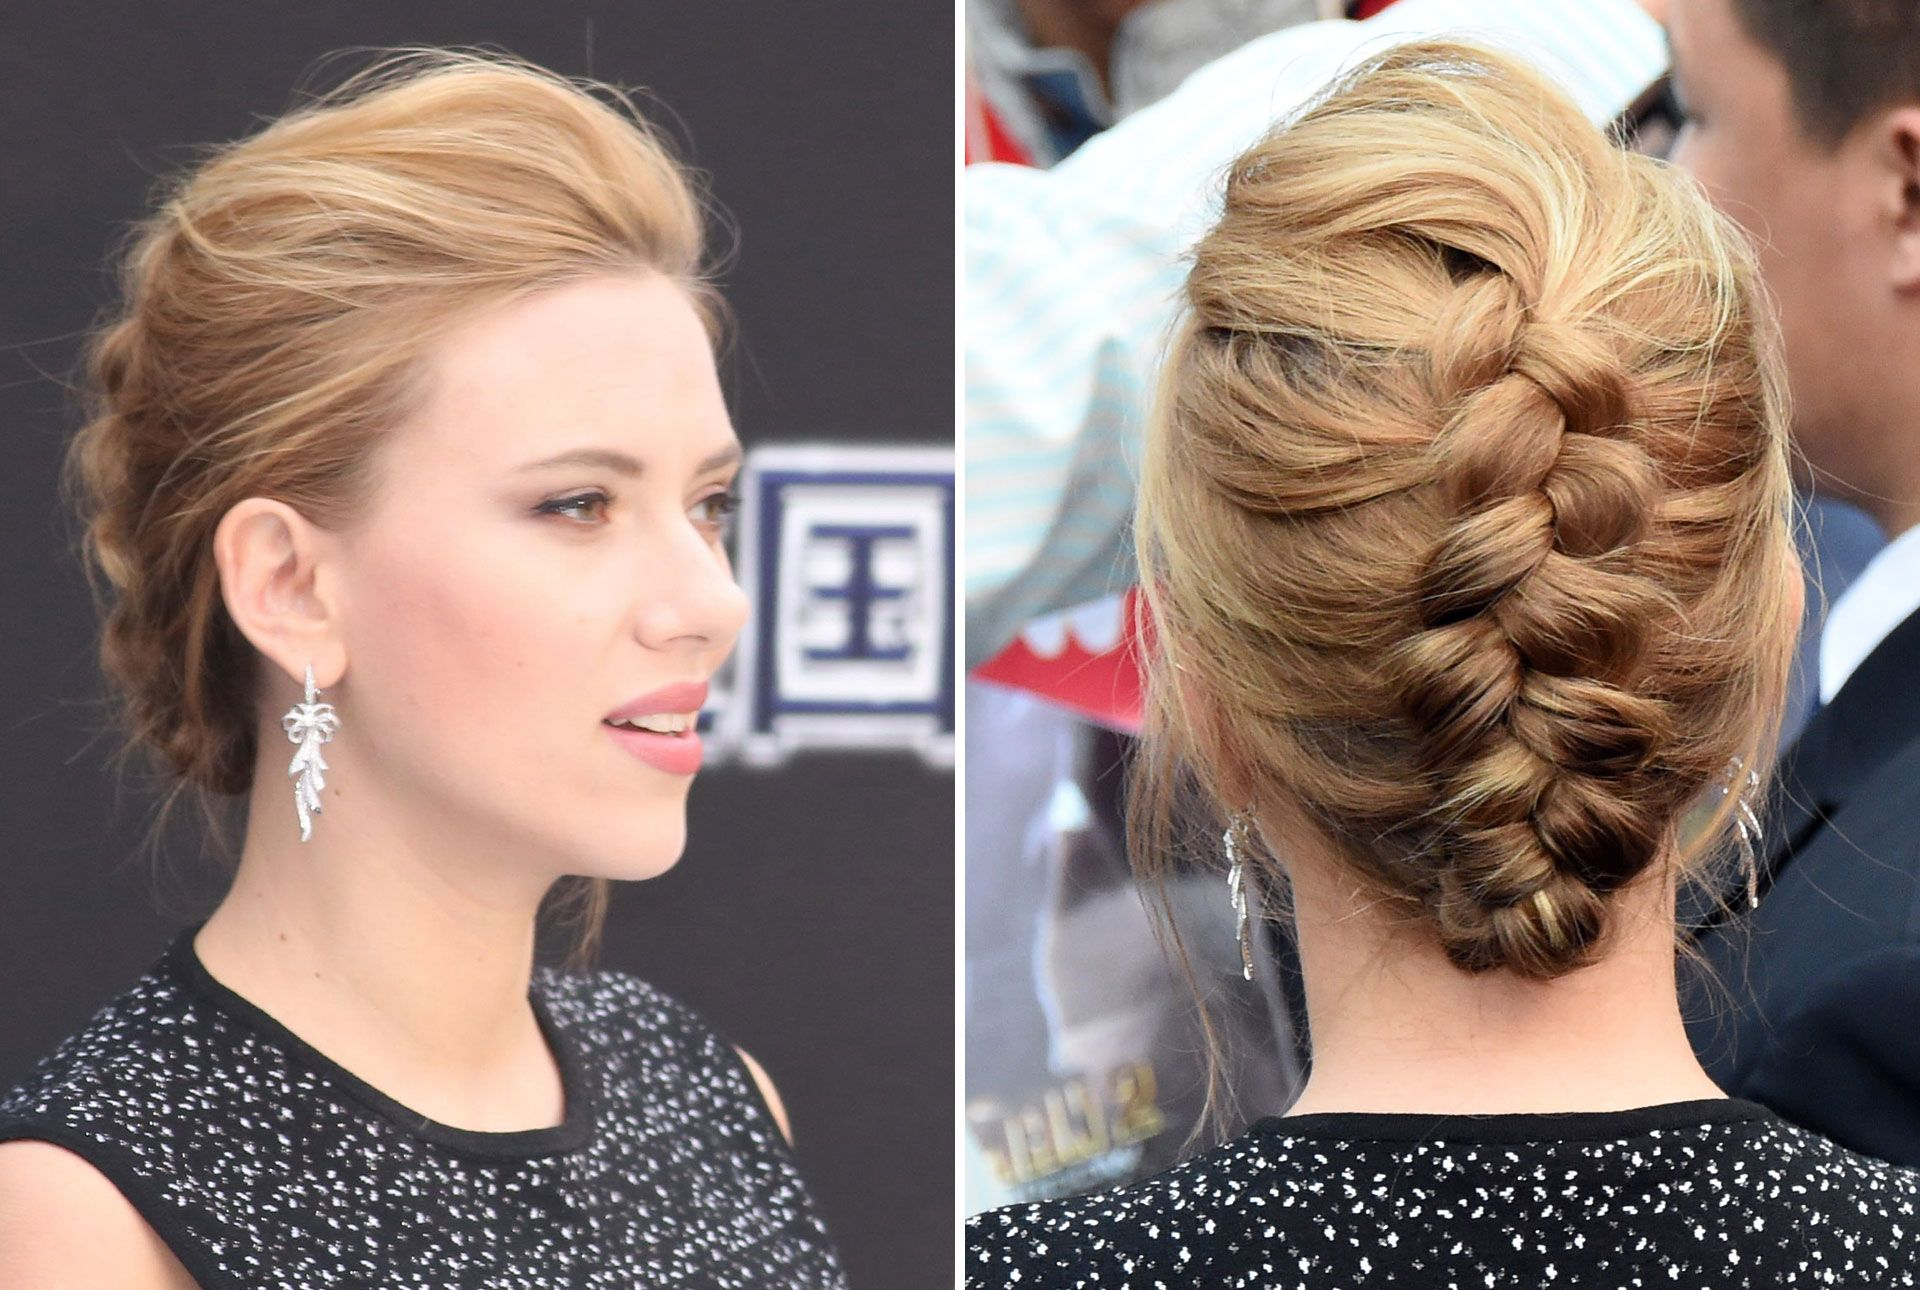 16 hairstyles for every kind of wedding you might attend | reverse